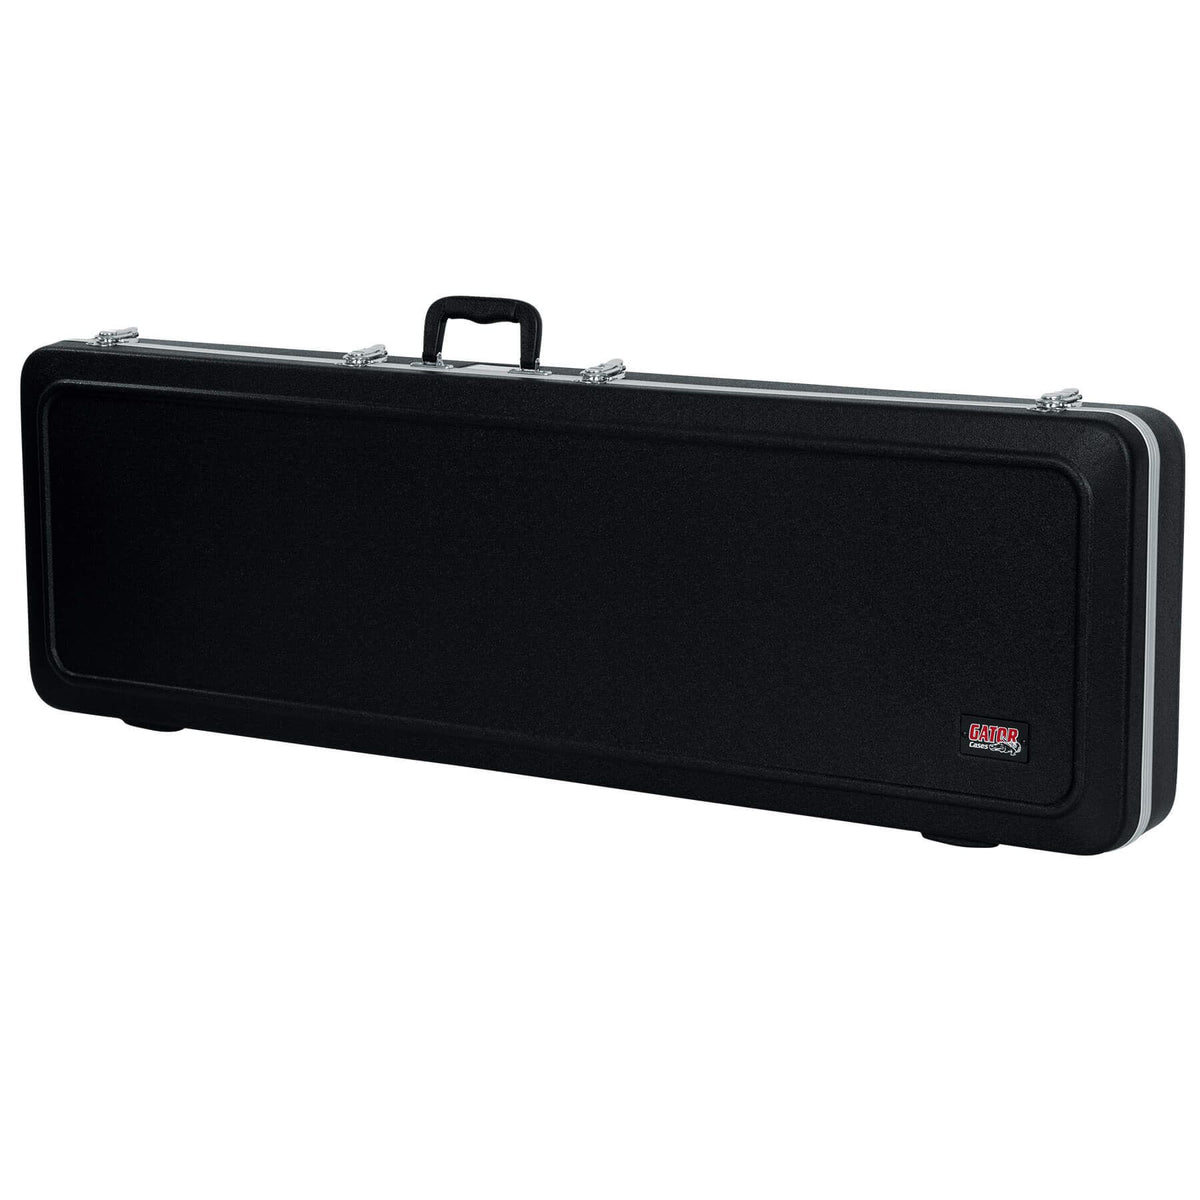 Gator Bass Guitar Case fits Fender AERODYNE Jazz Bass